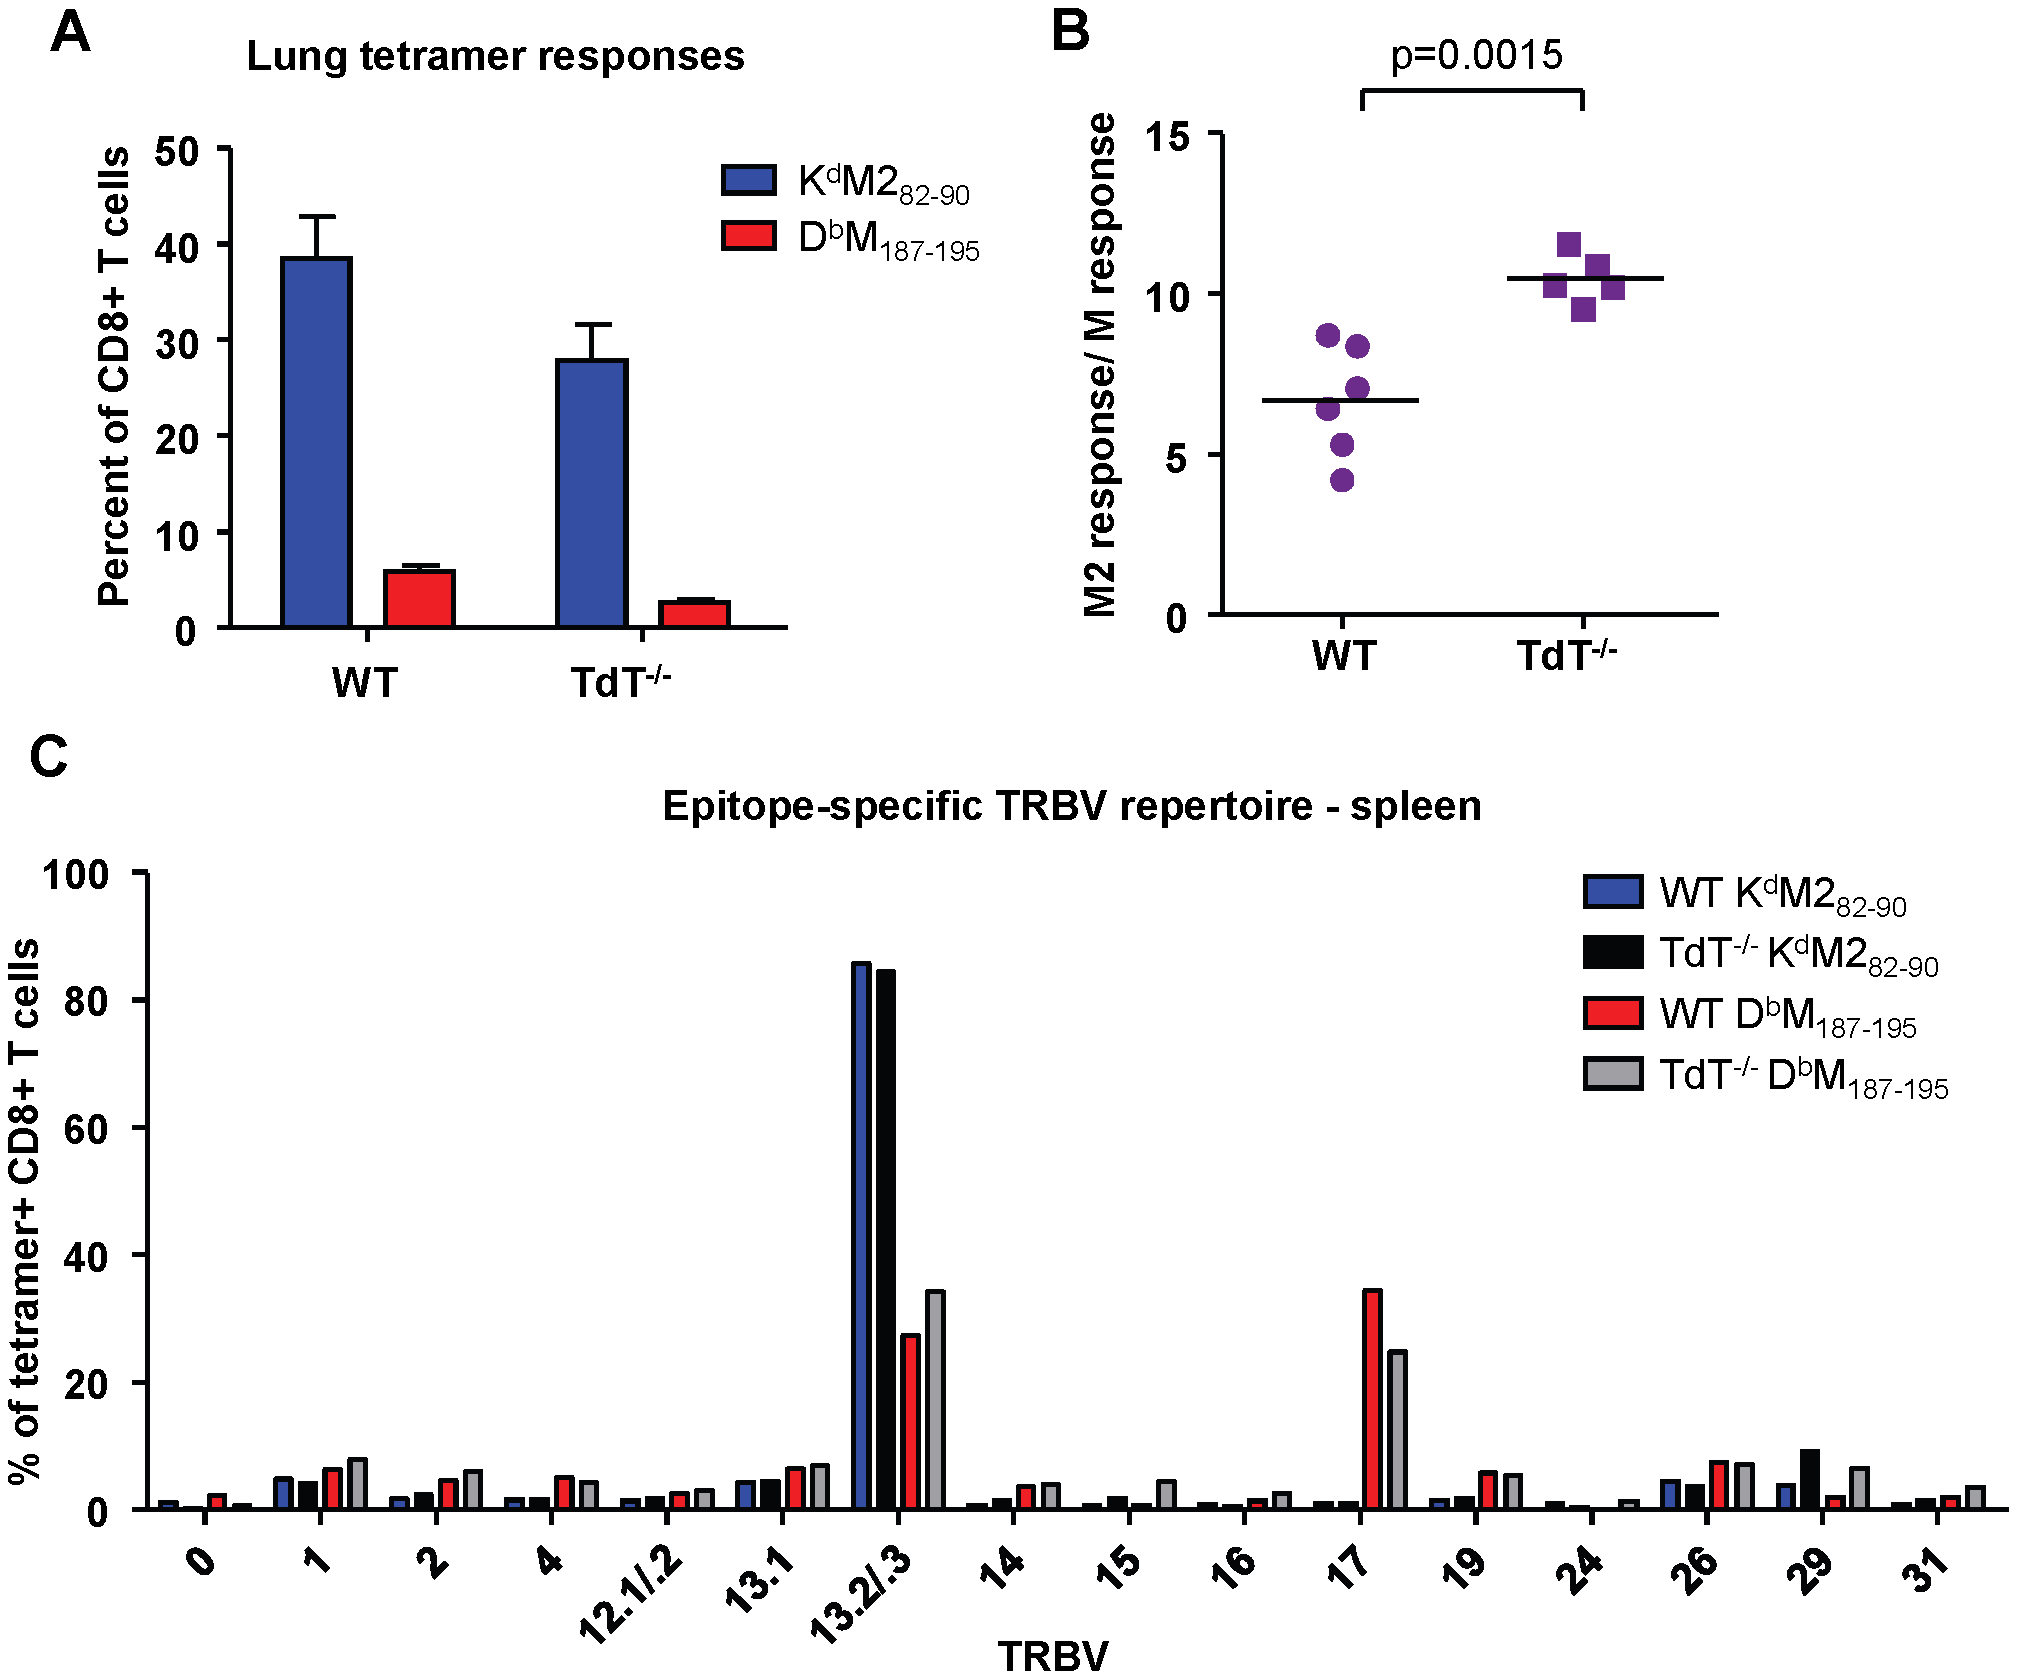 Epitope-specific CD8+ T cell responses in wild-type and TdT<sup>-/-</sup> adult CB6F1 mice.